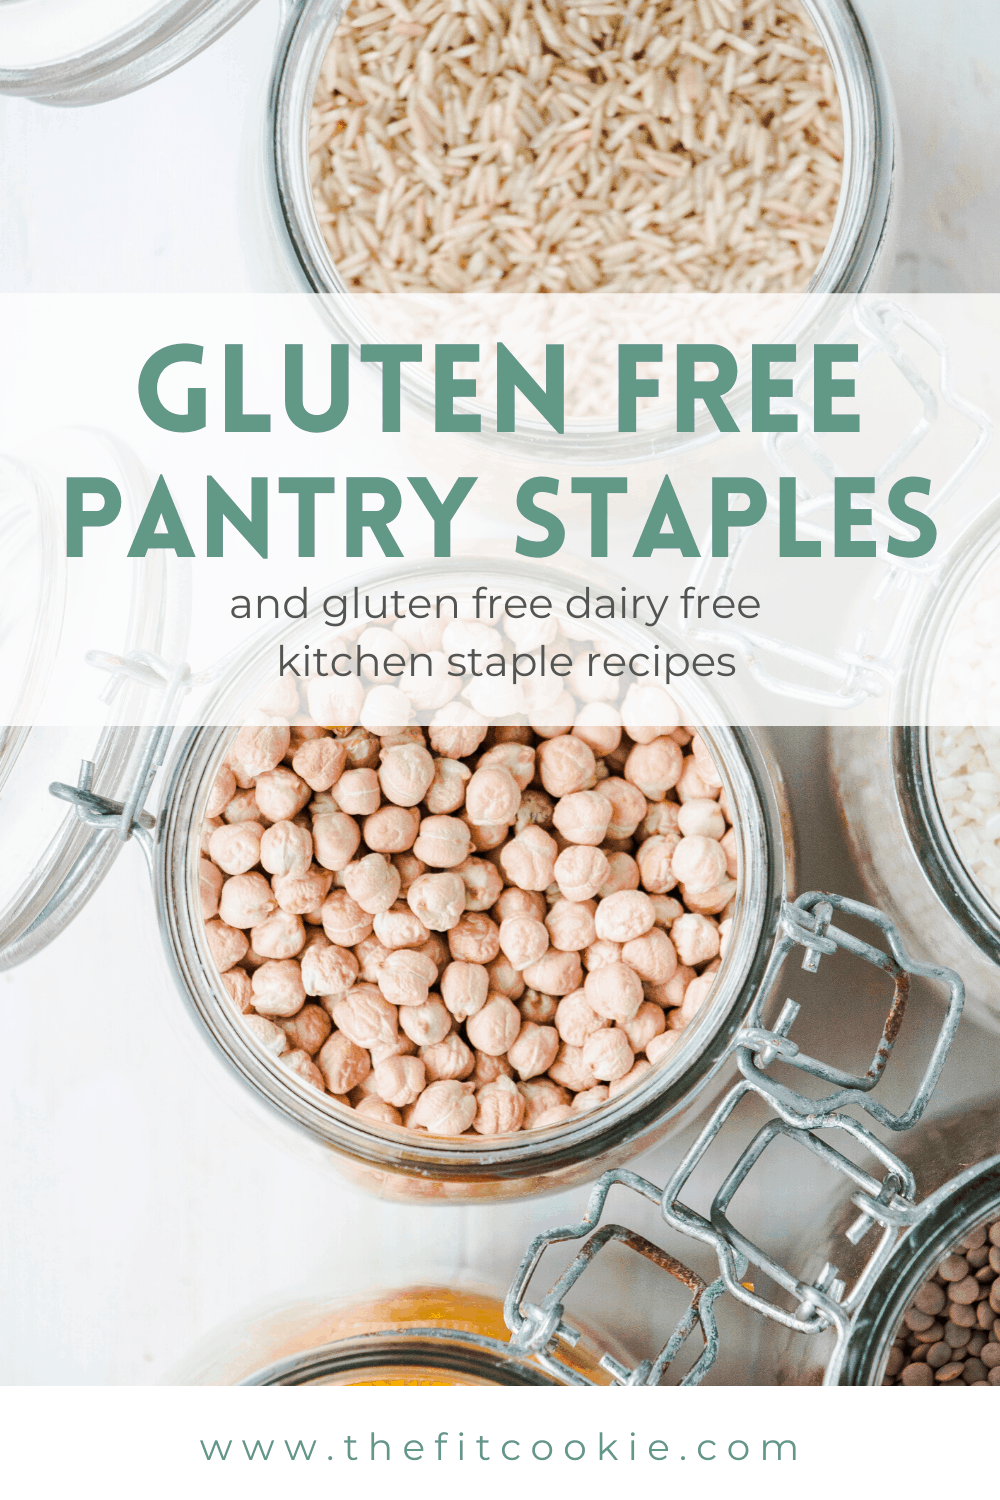 gluten free pantry staples and recipes